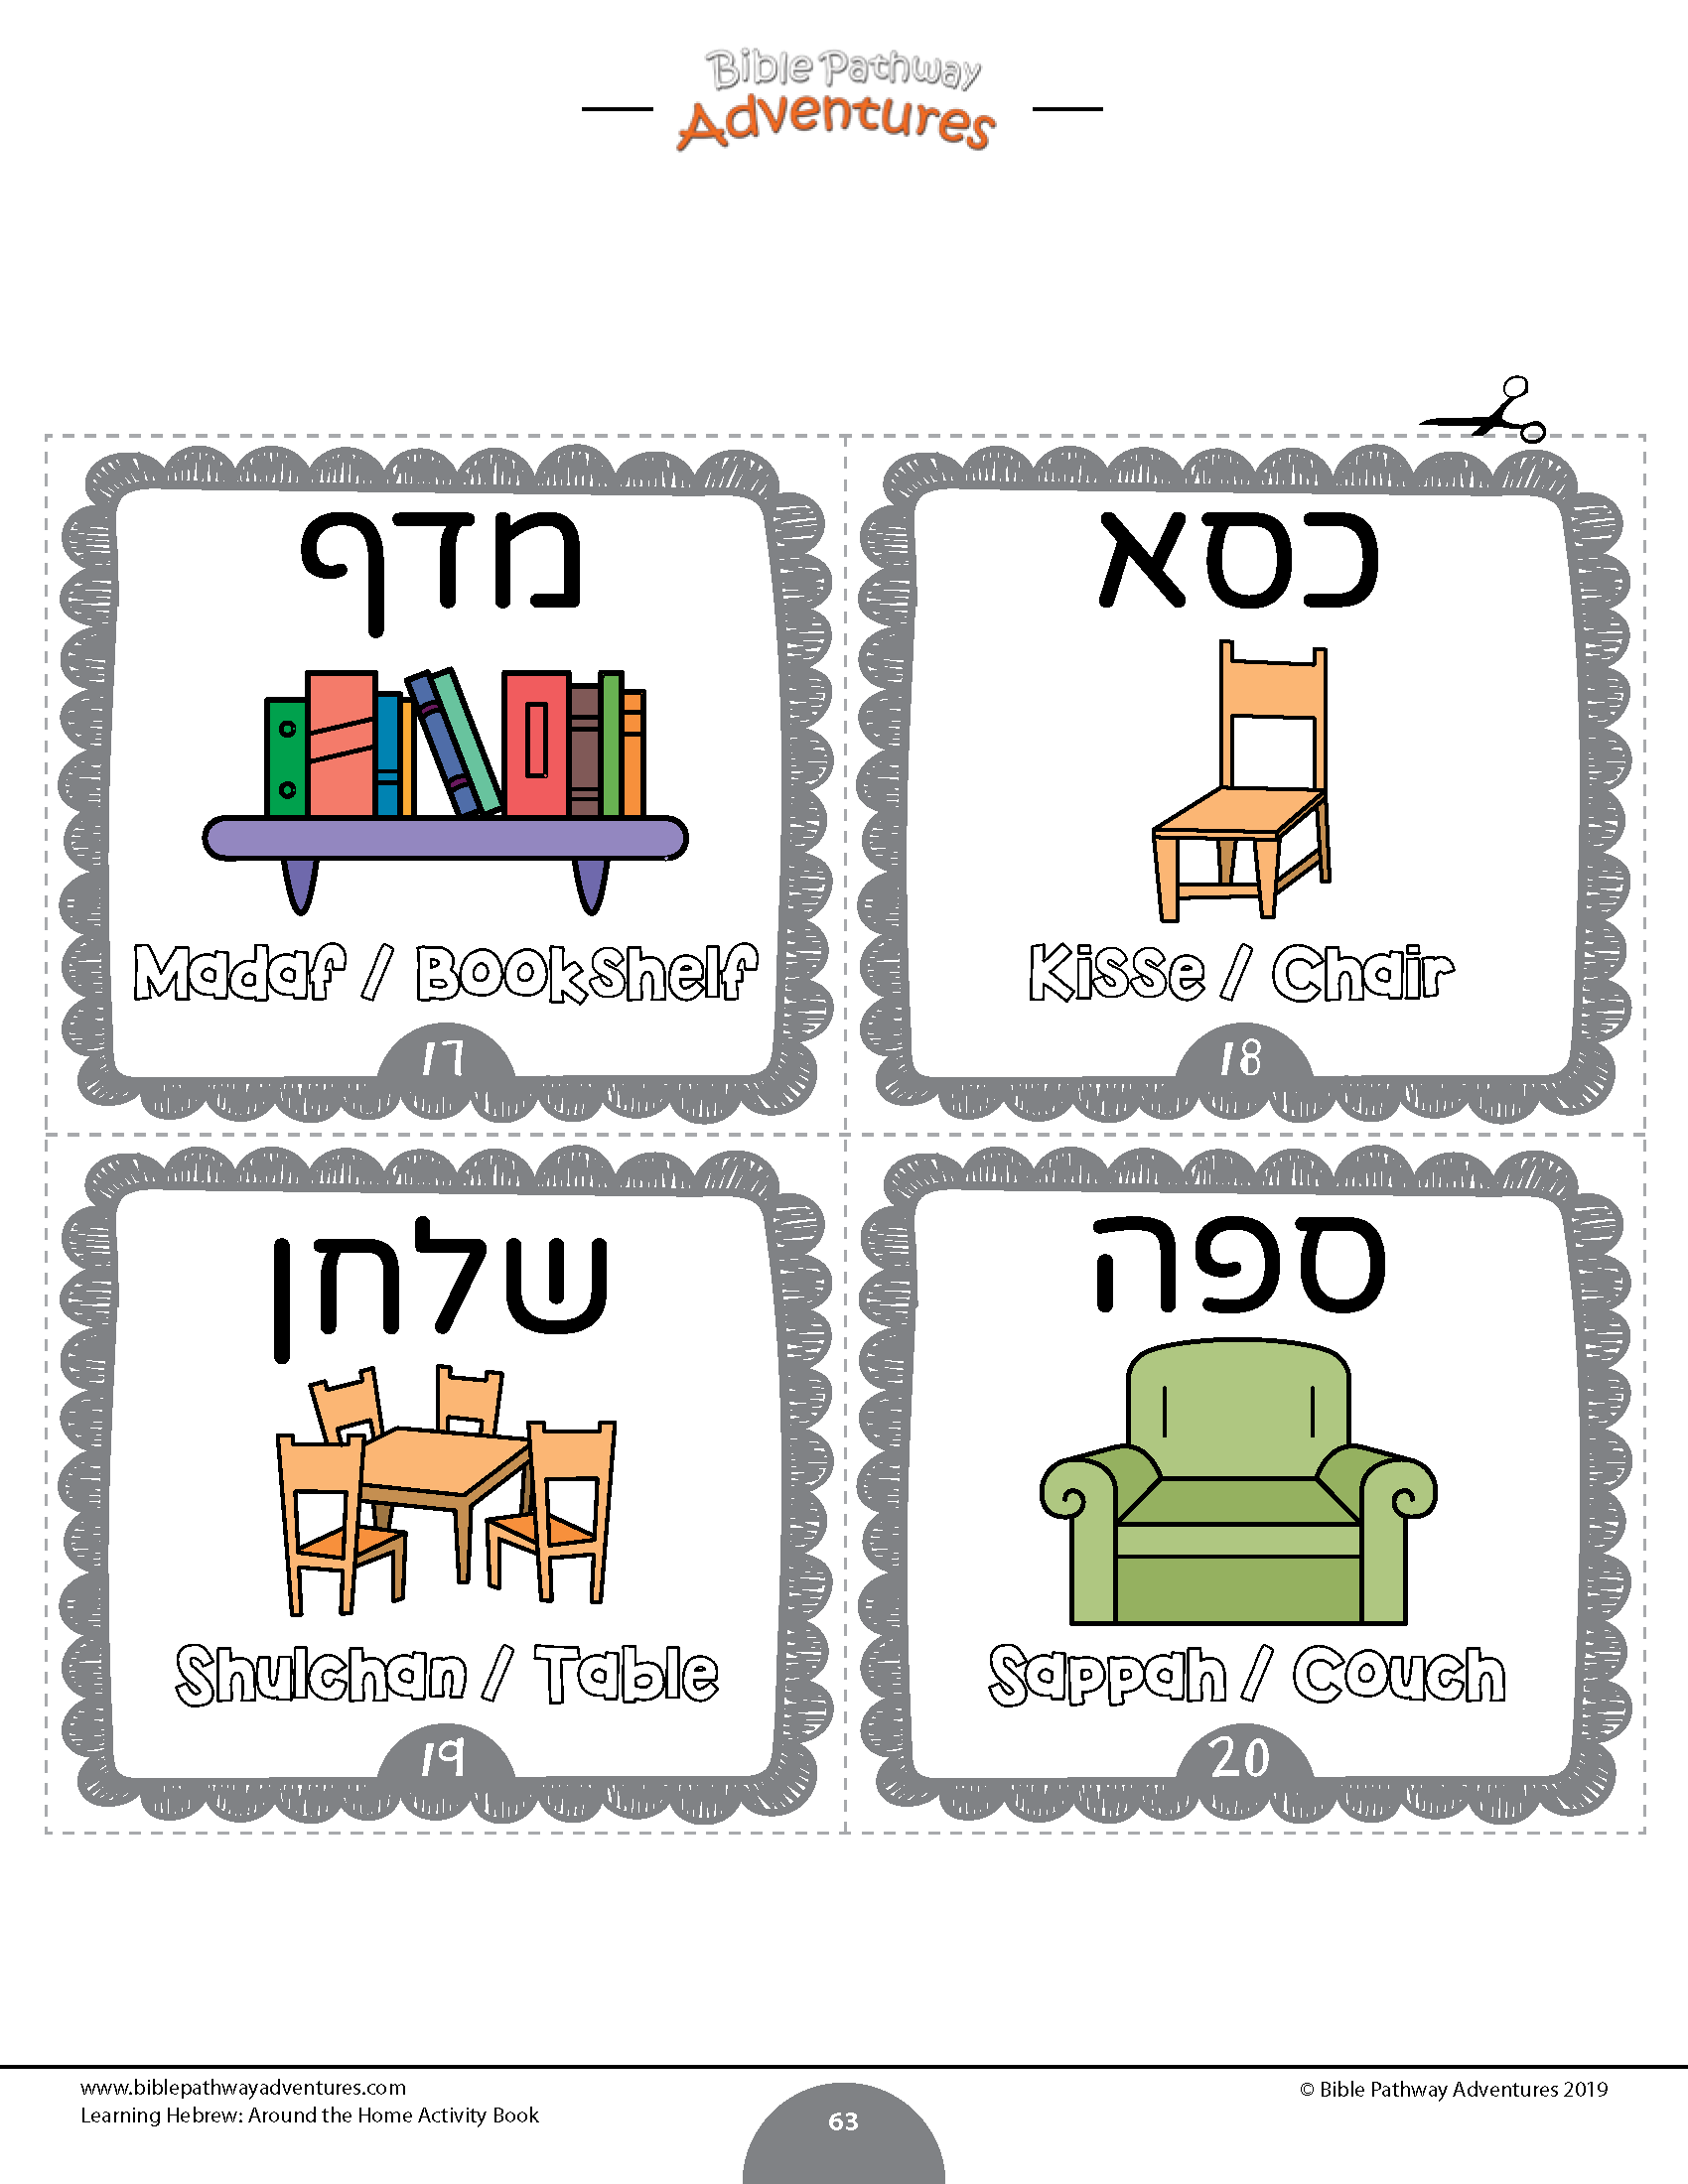 Hebrew flashcards for beginners | bookshelf, chair, table